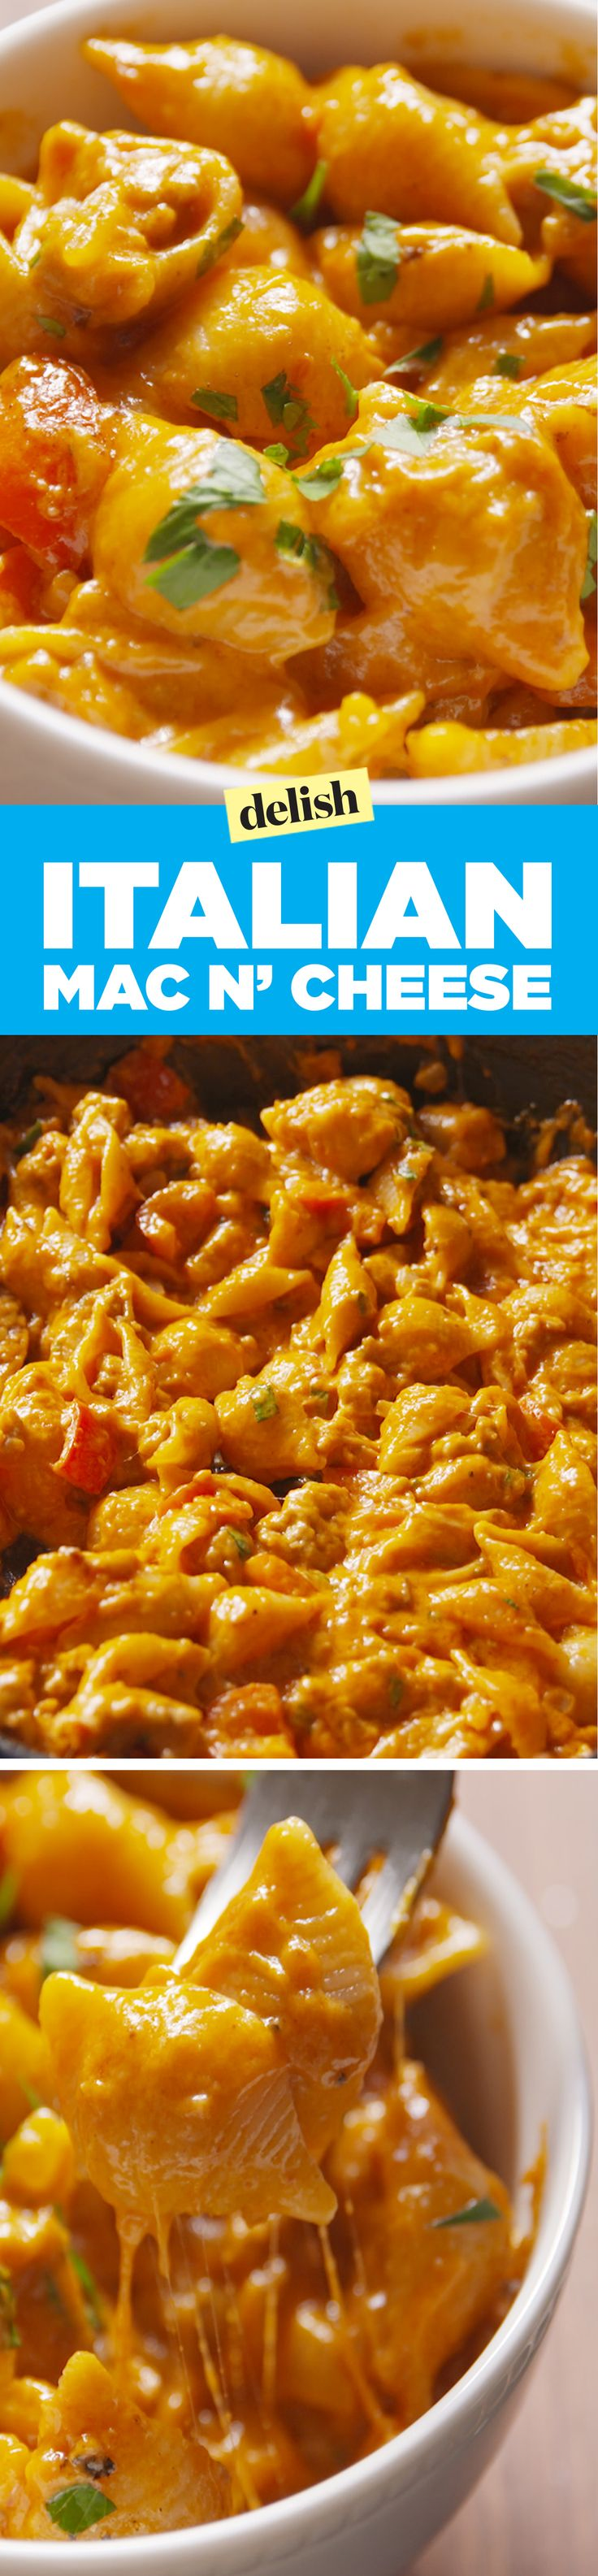 Italian mac n' cheese is the ultimate comfort food. Get the recipe on Delish.com.